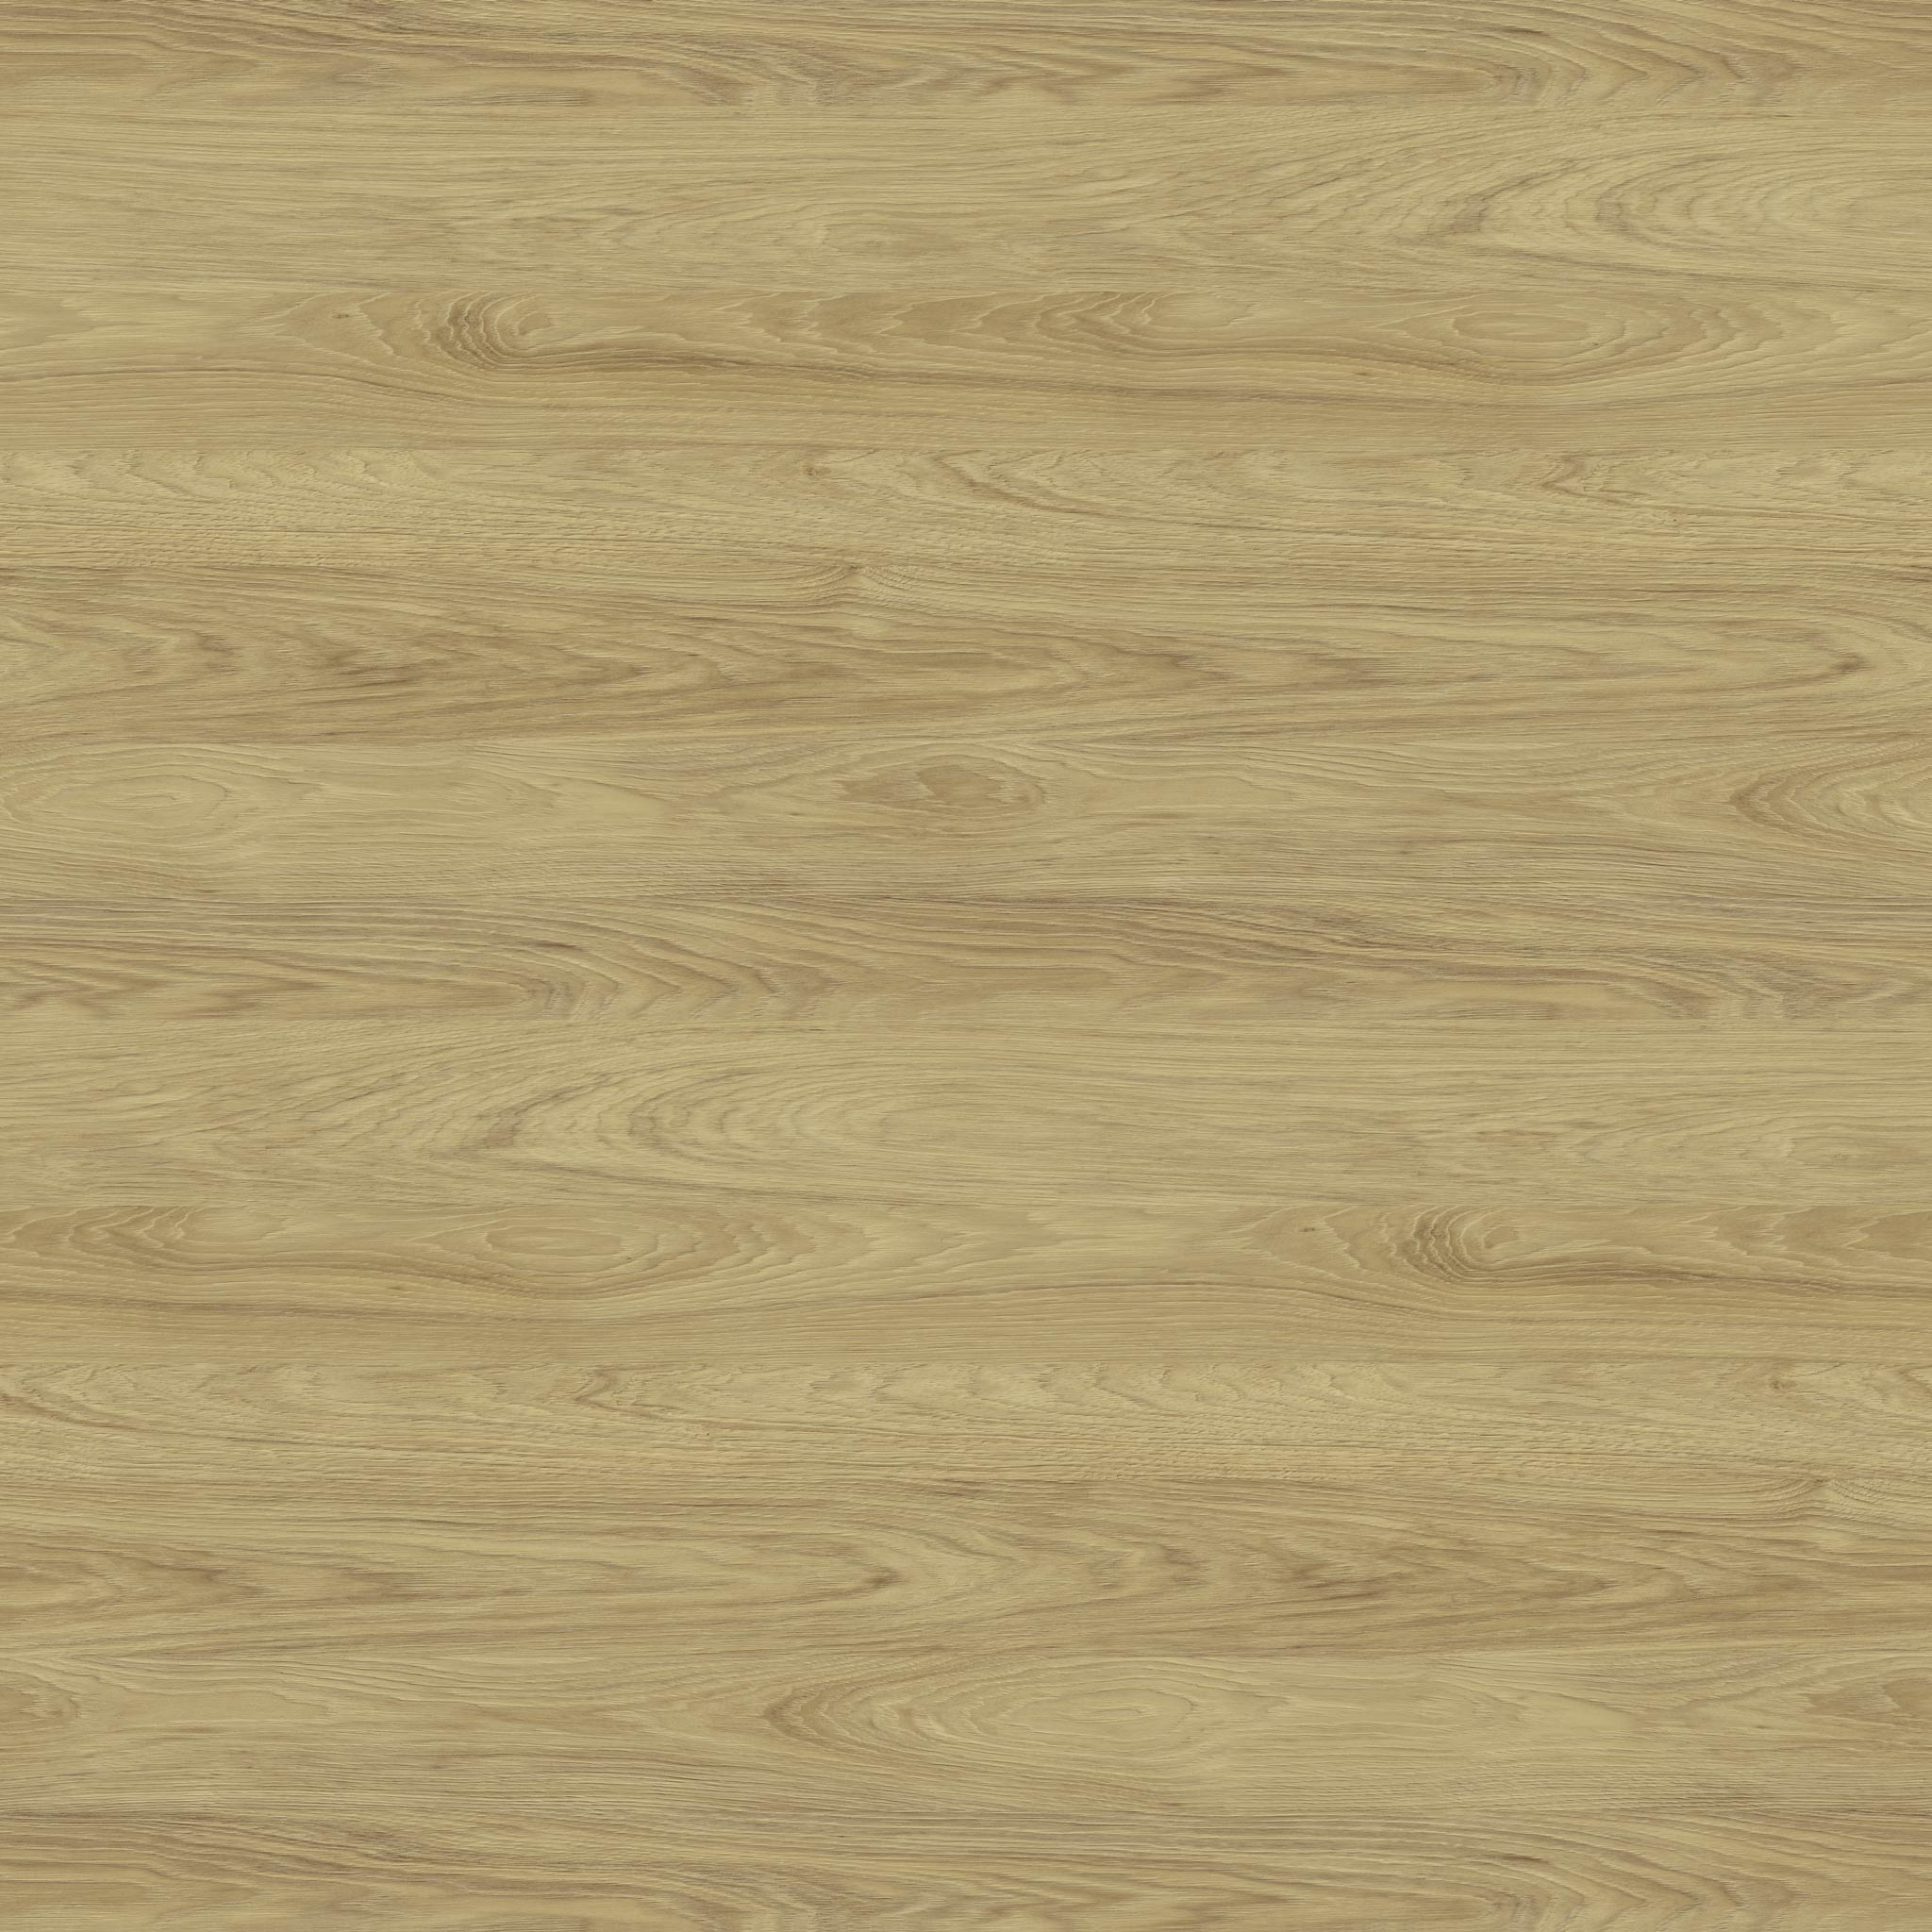 Egger Contemporary Natural Hickory kitchen worktop sample.